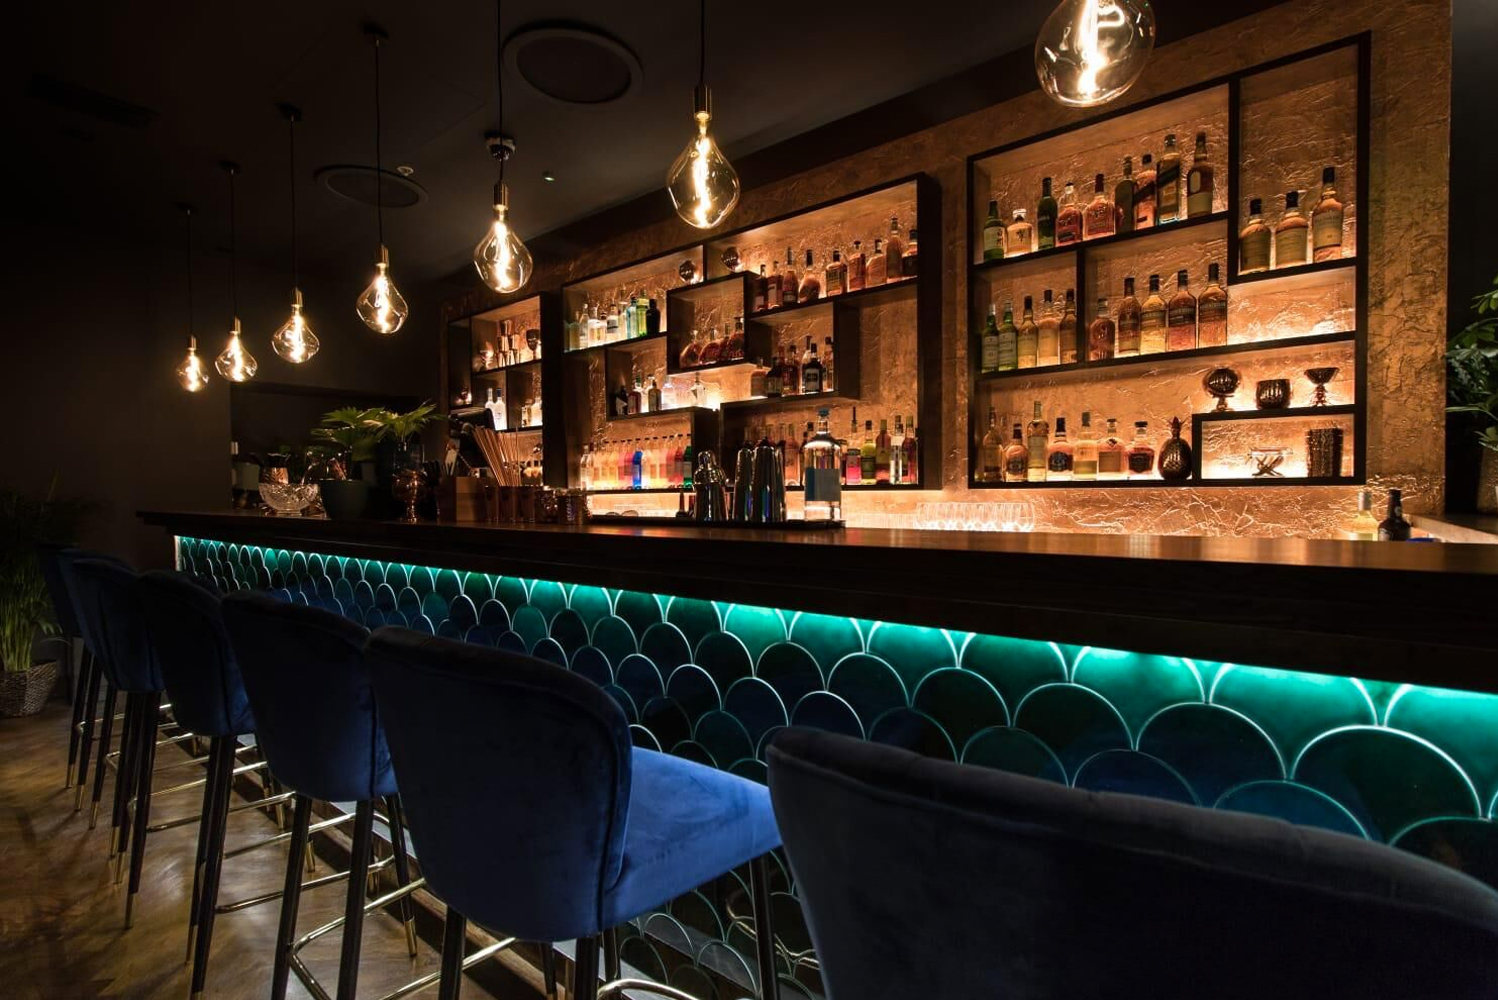 The Parrot, a cocktail bar and live music venue within the Waldorf Hilton, London, has opened.